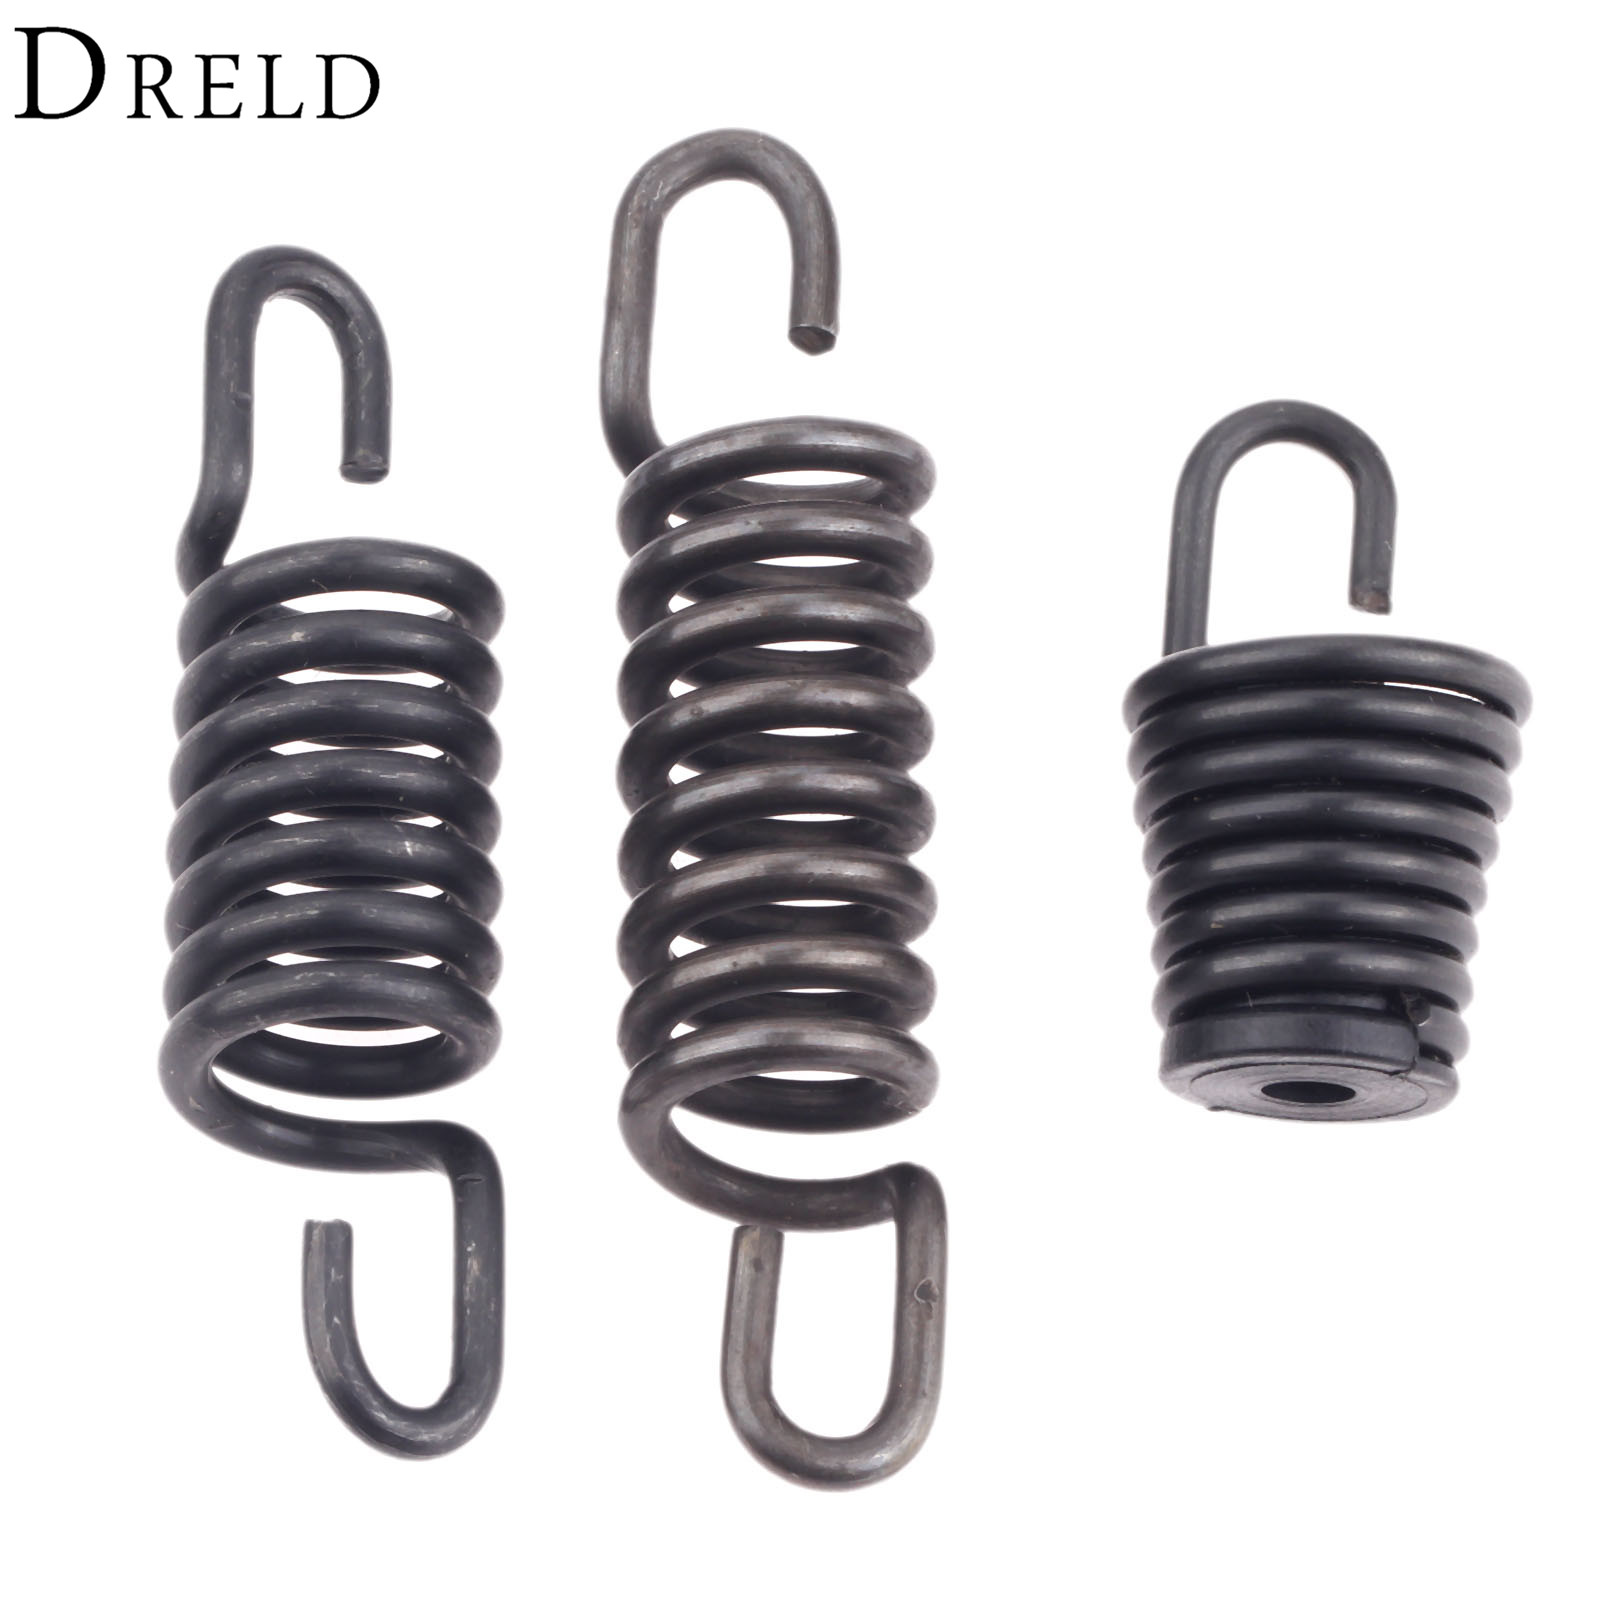 DRELD 3Pcs/set Chainsaw AV SPRING MOUNT SET TO FIT FOR PARTNER CHAINSAW 350 351 370 371 390 420 Garden Power Tools